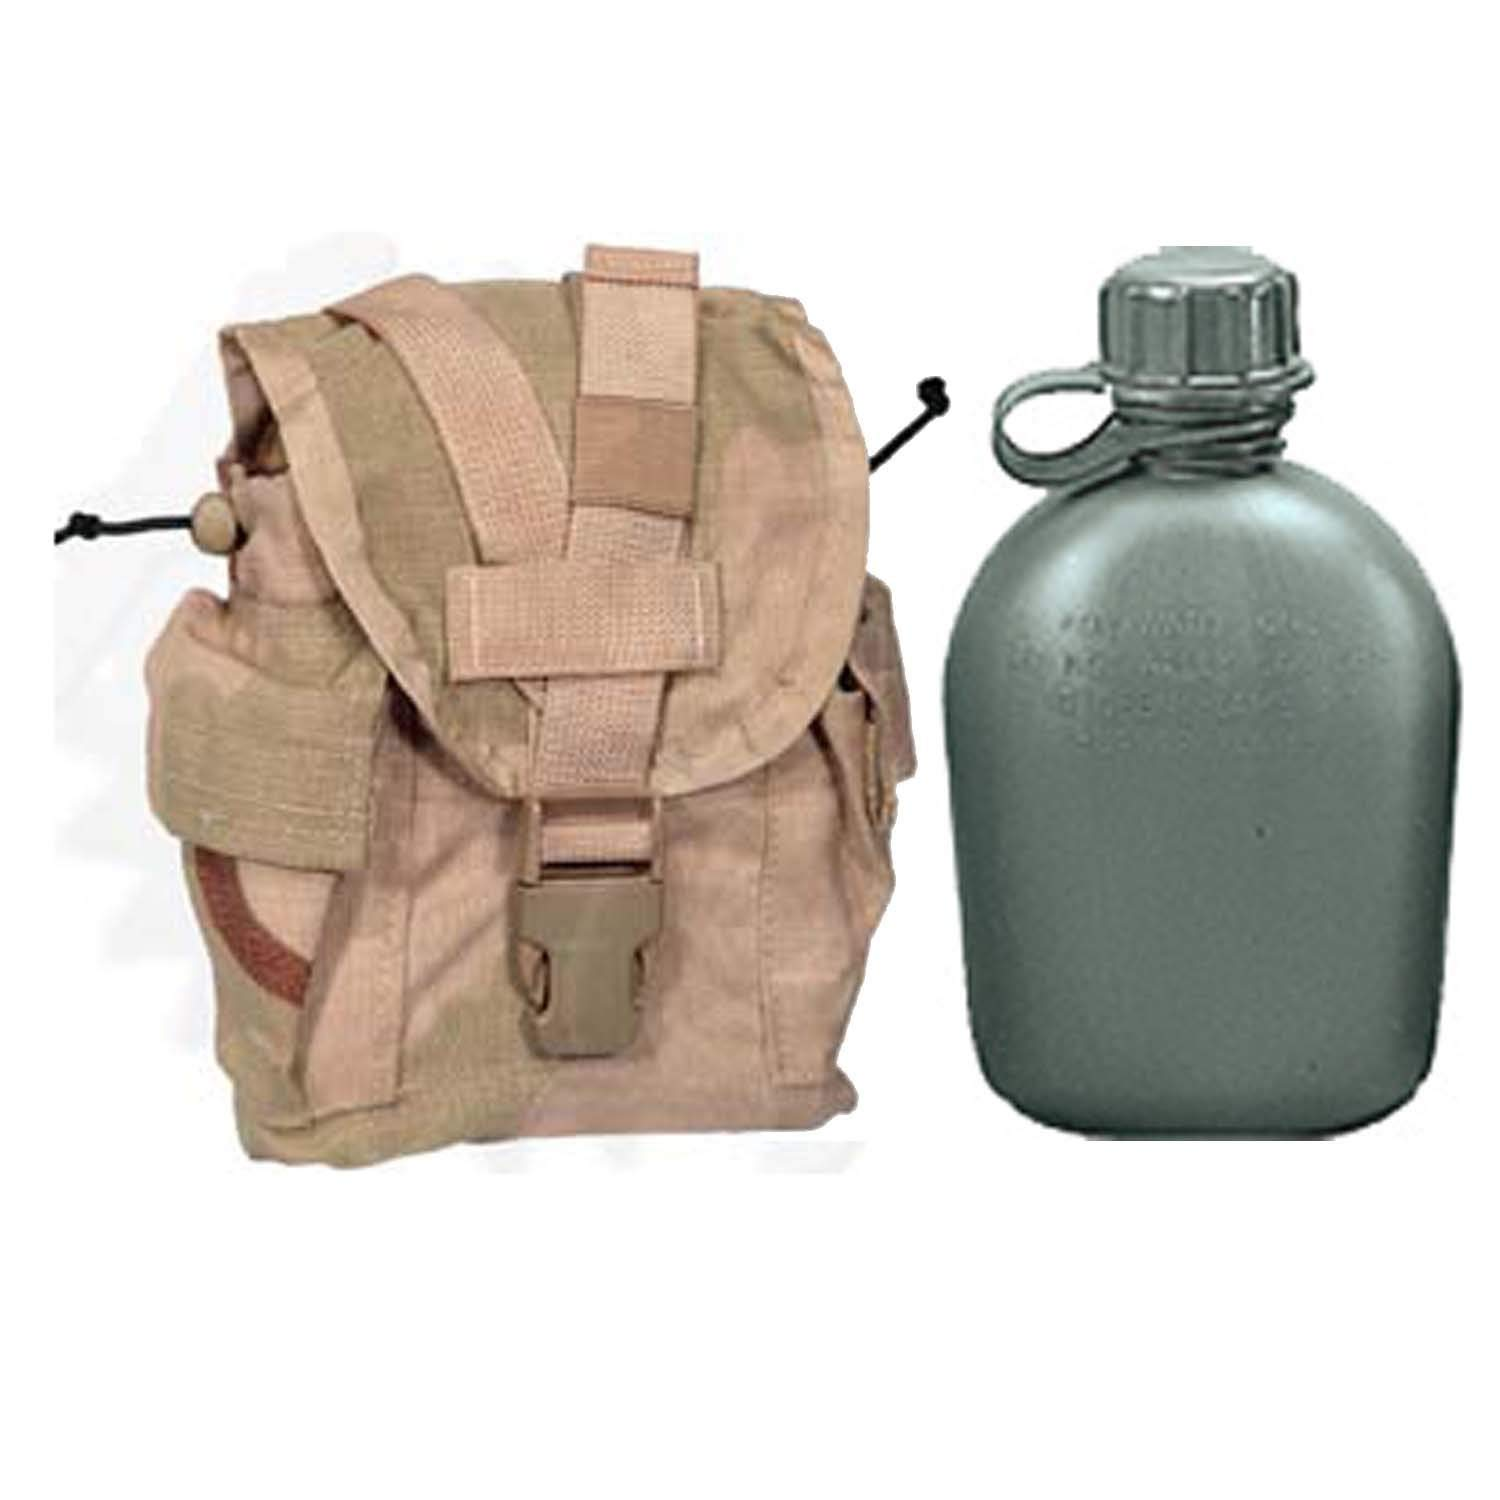 443e9641fd9 Get Quotations · Military Outdoor Clothing Never Issued U.S. G.I. 1 quart  Olive Drab Military Canteen with Previously Issued U.S. G.I.